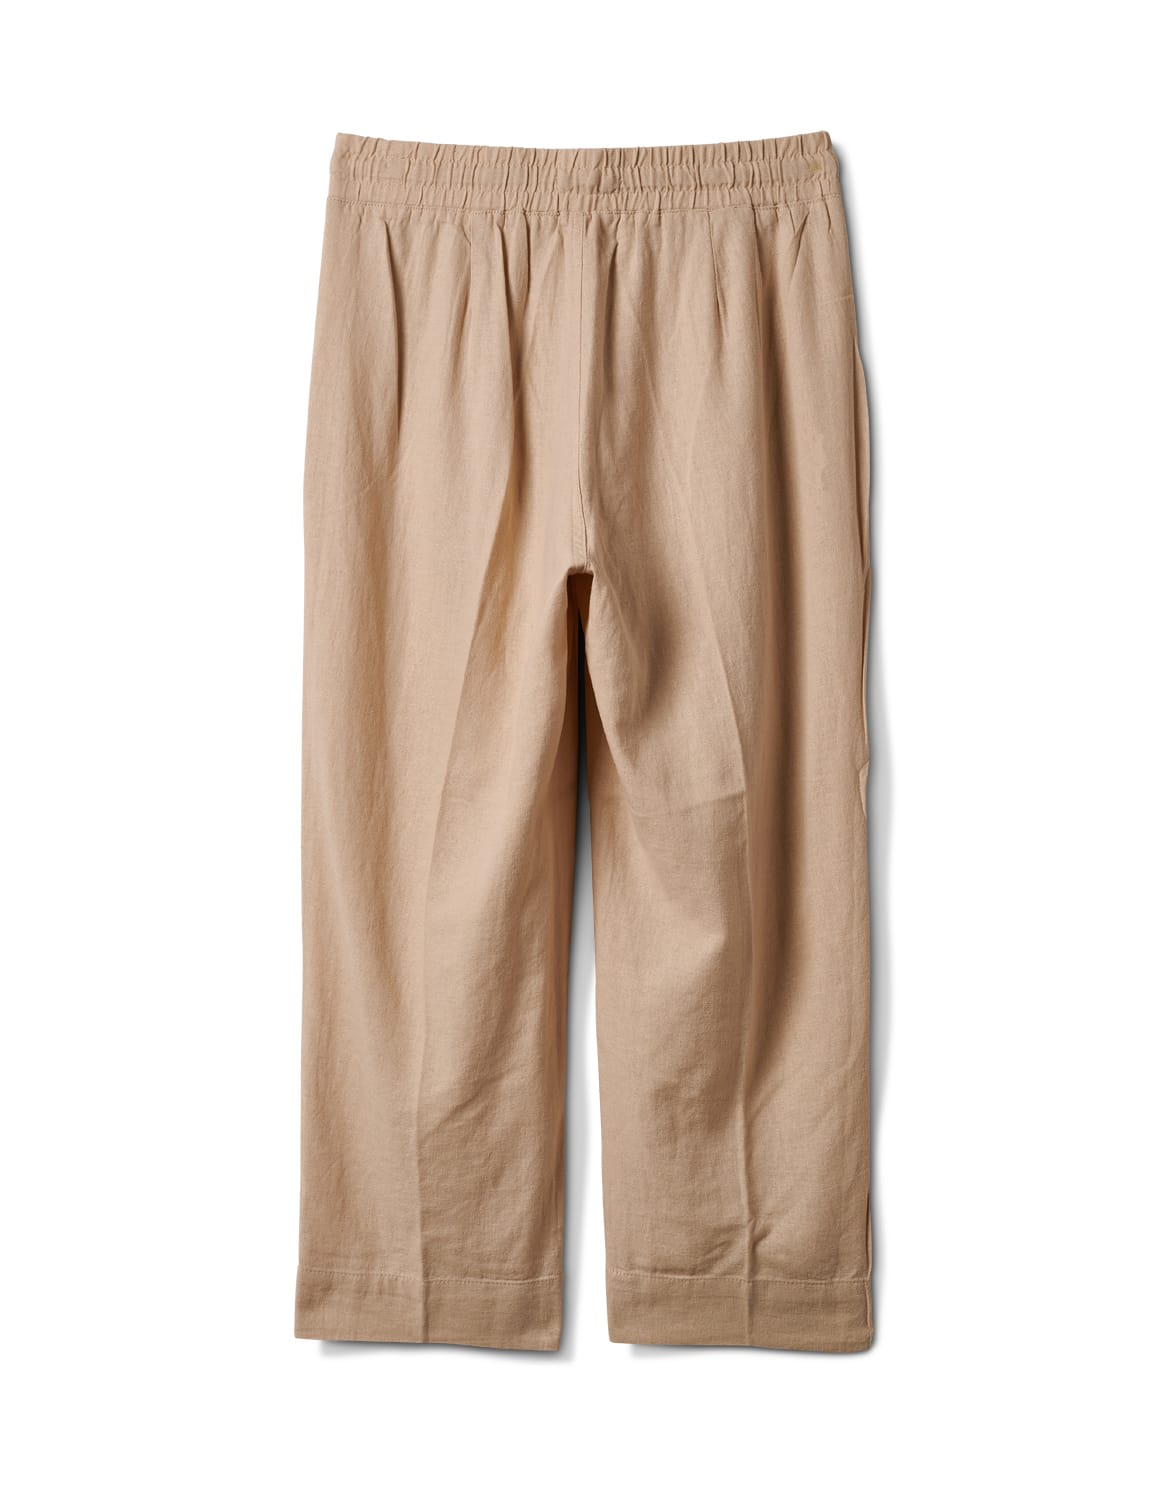 Drawstring  Waist Pull On Crop Pant With Pockets - Natural - Back